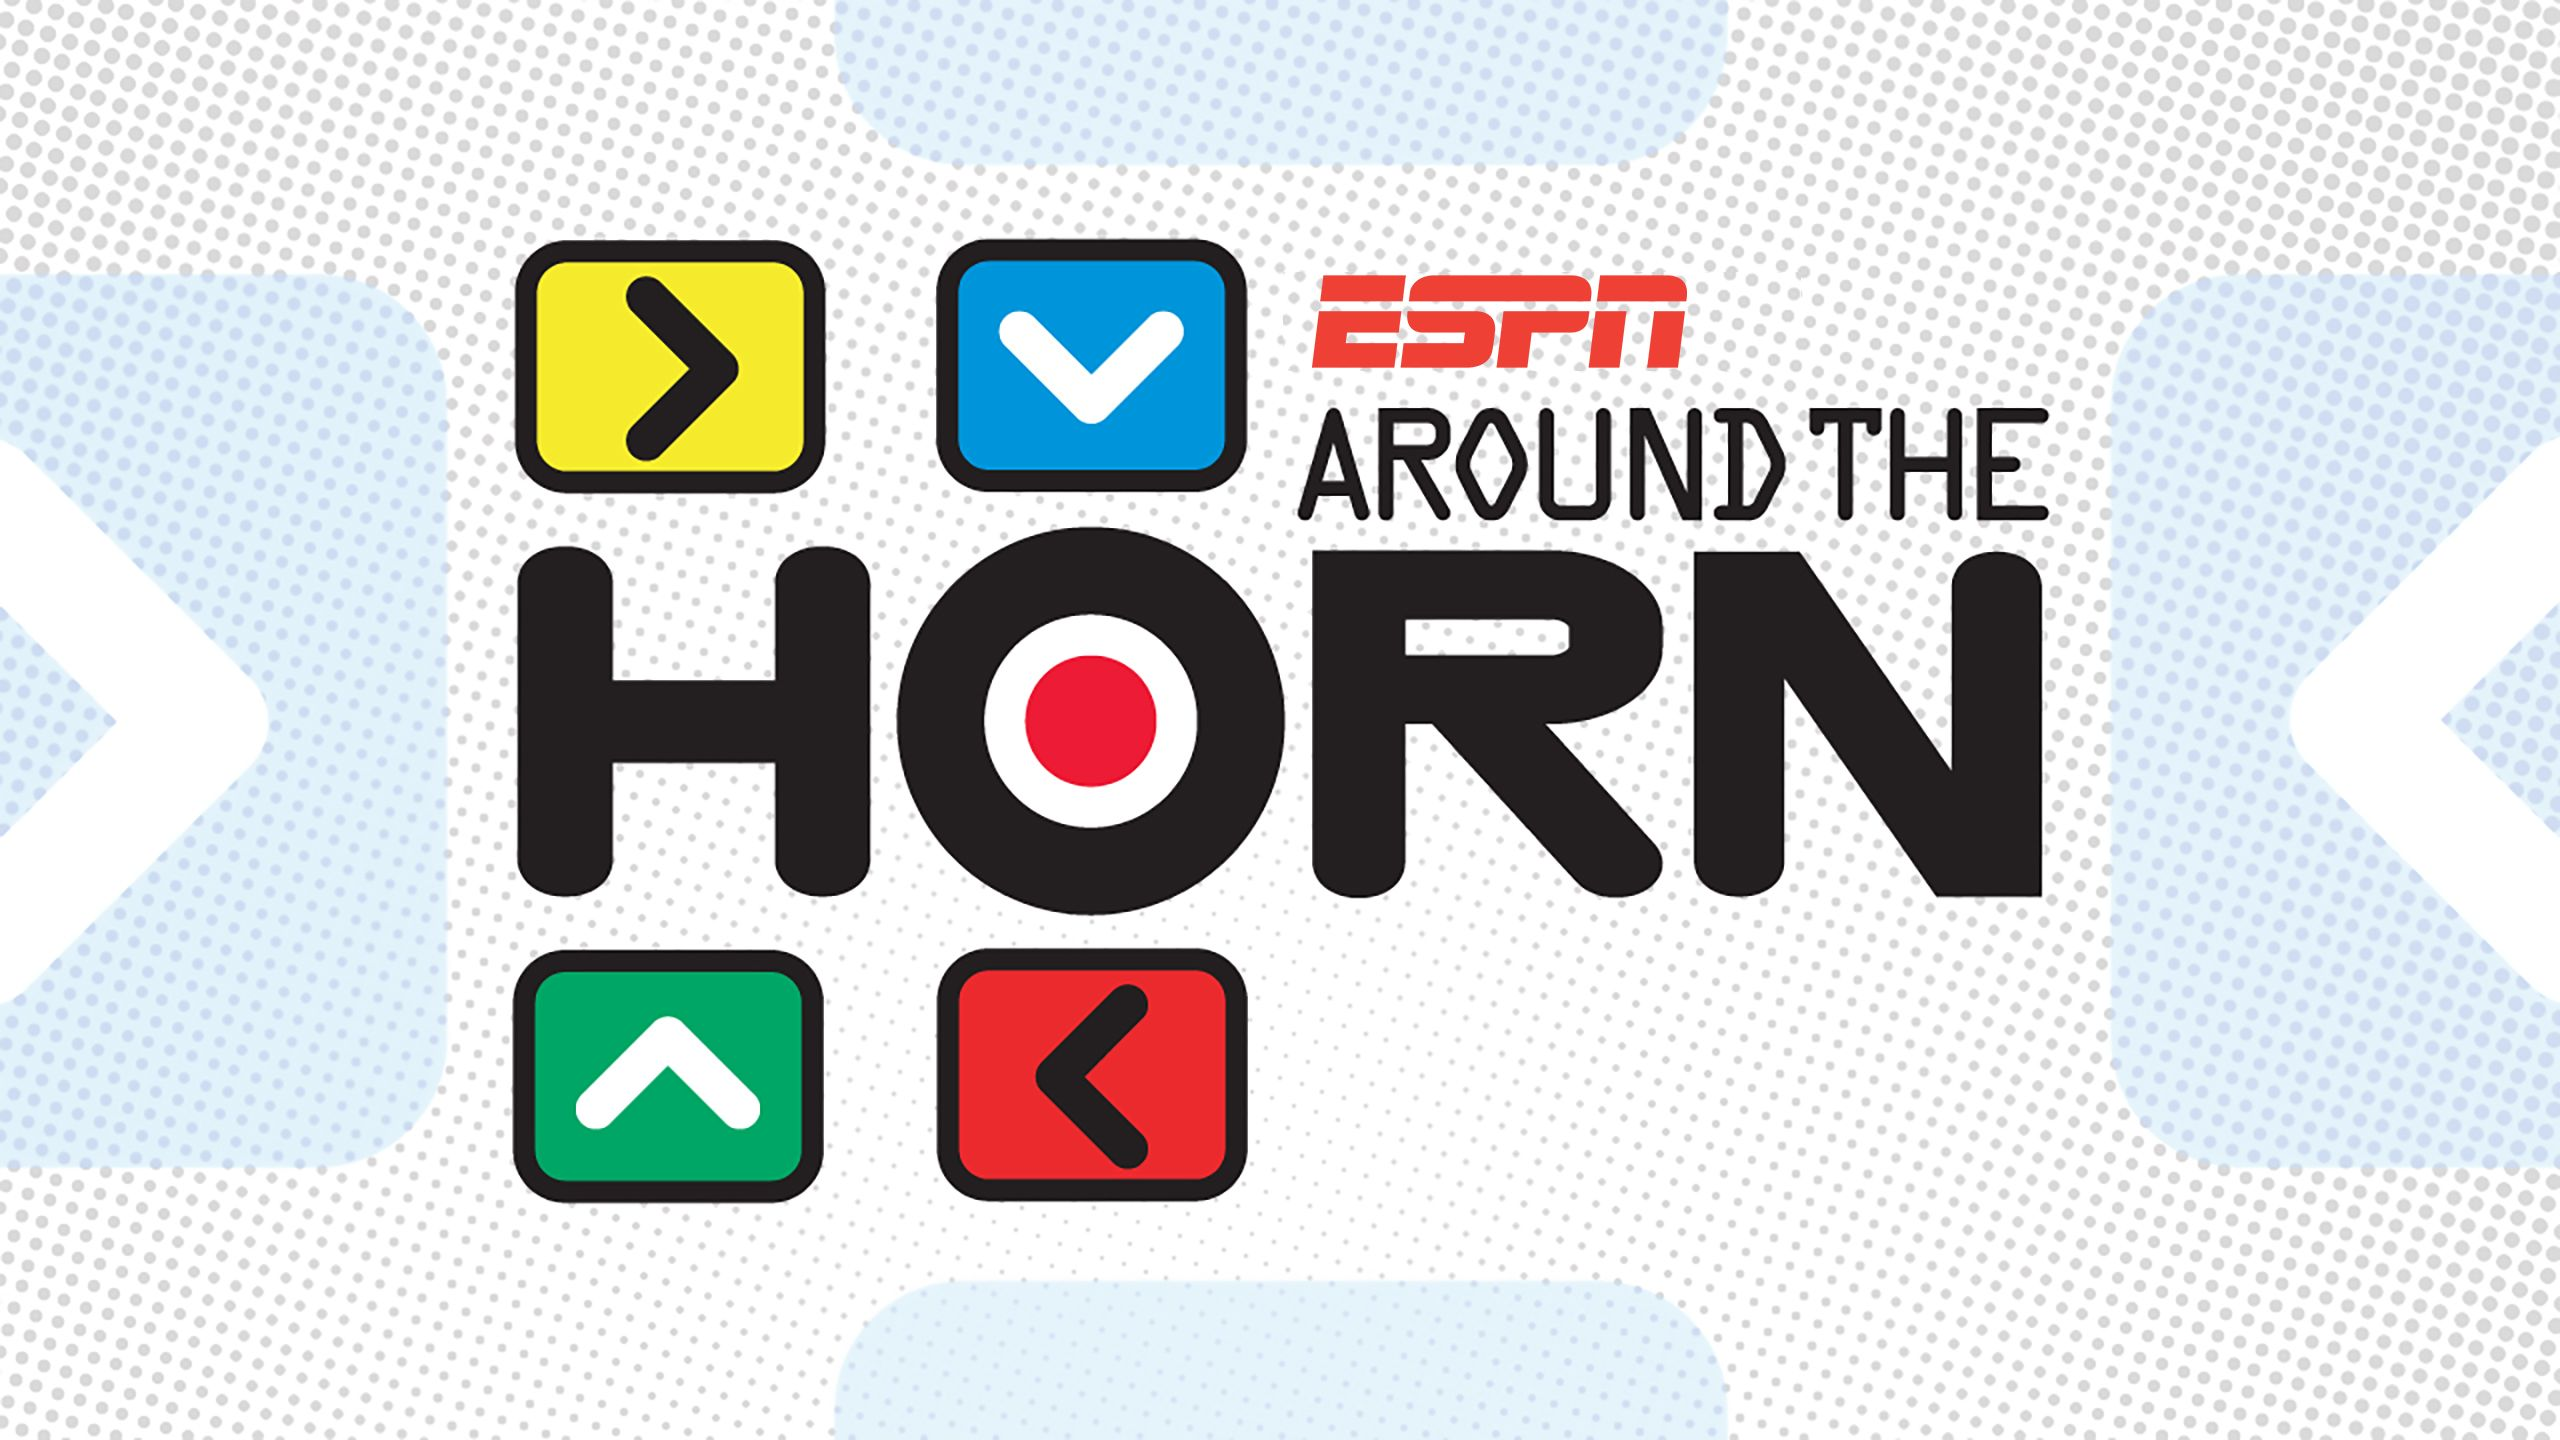 Fri, 3/23 - Around The Horn